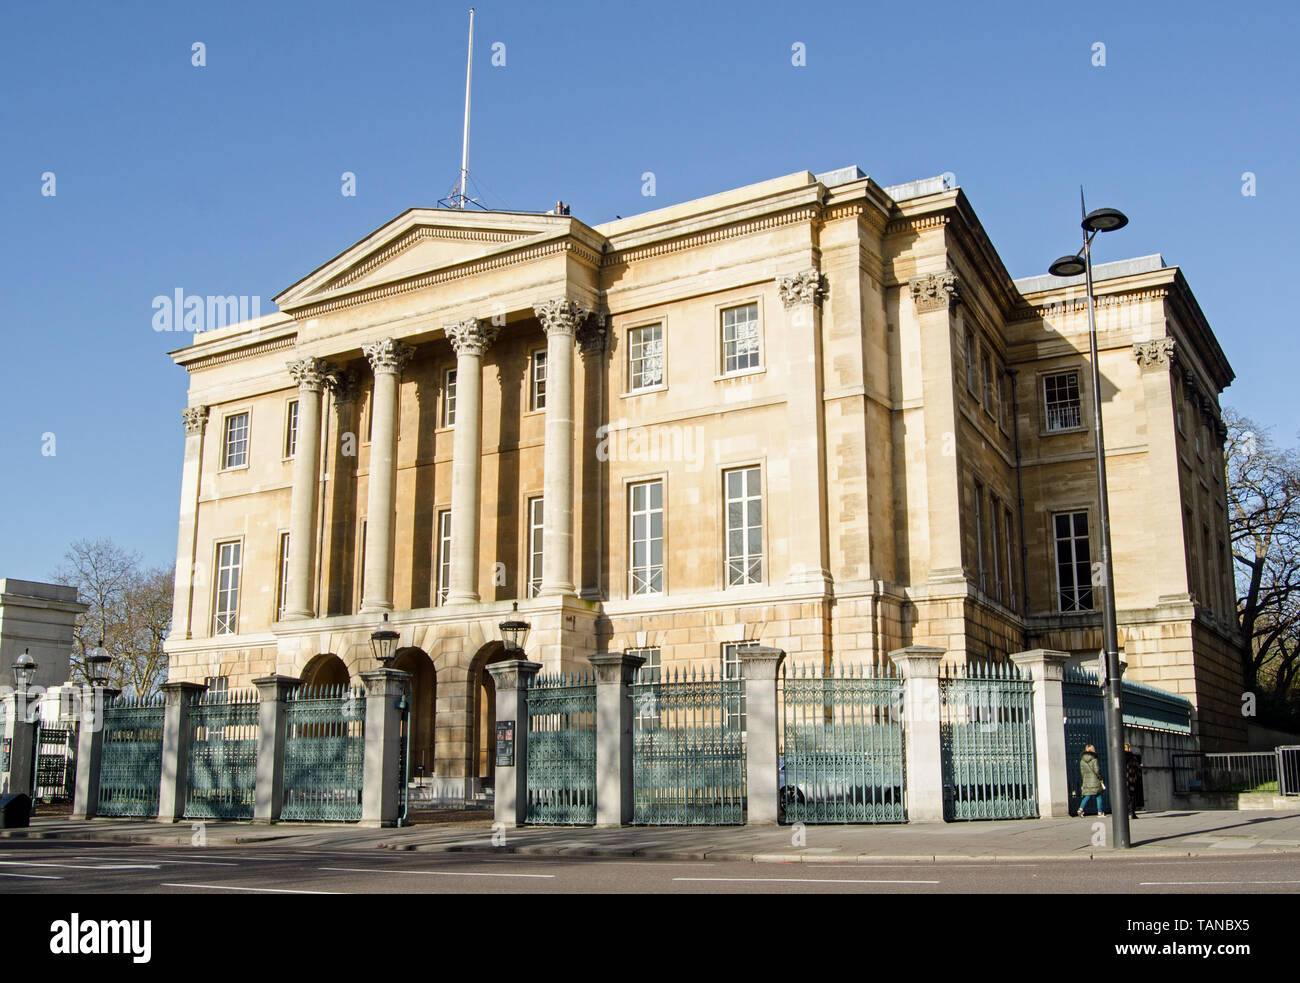 LONDON, UK - JANUARY 28, 2016: Facade of the former home of the first Duke of Wellington - Apsley House.  Also known as Number 1, London the mansion o - Stock Image